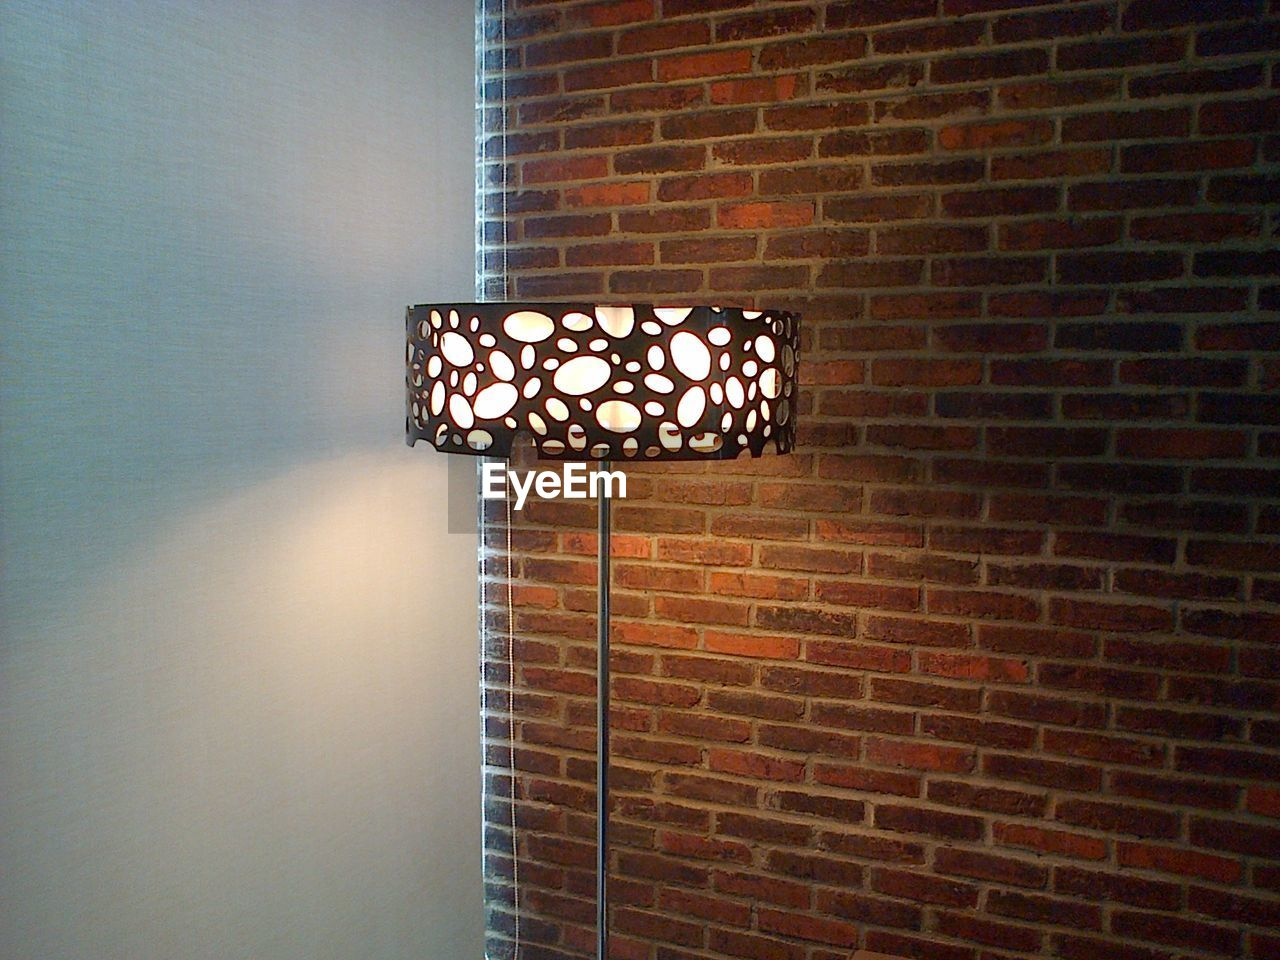 wall - building feature, brick wall, illuminated, lighting equipment, no people, indoors, electricity, architecture, built structure, close-up, day